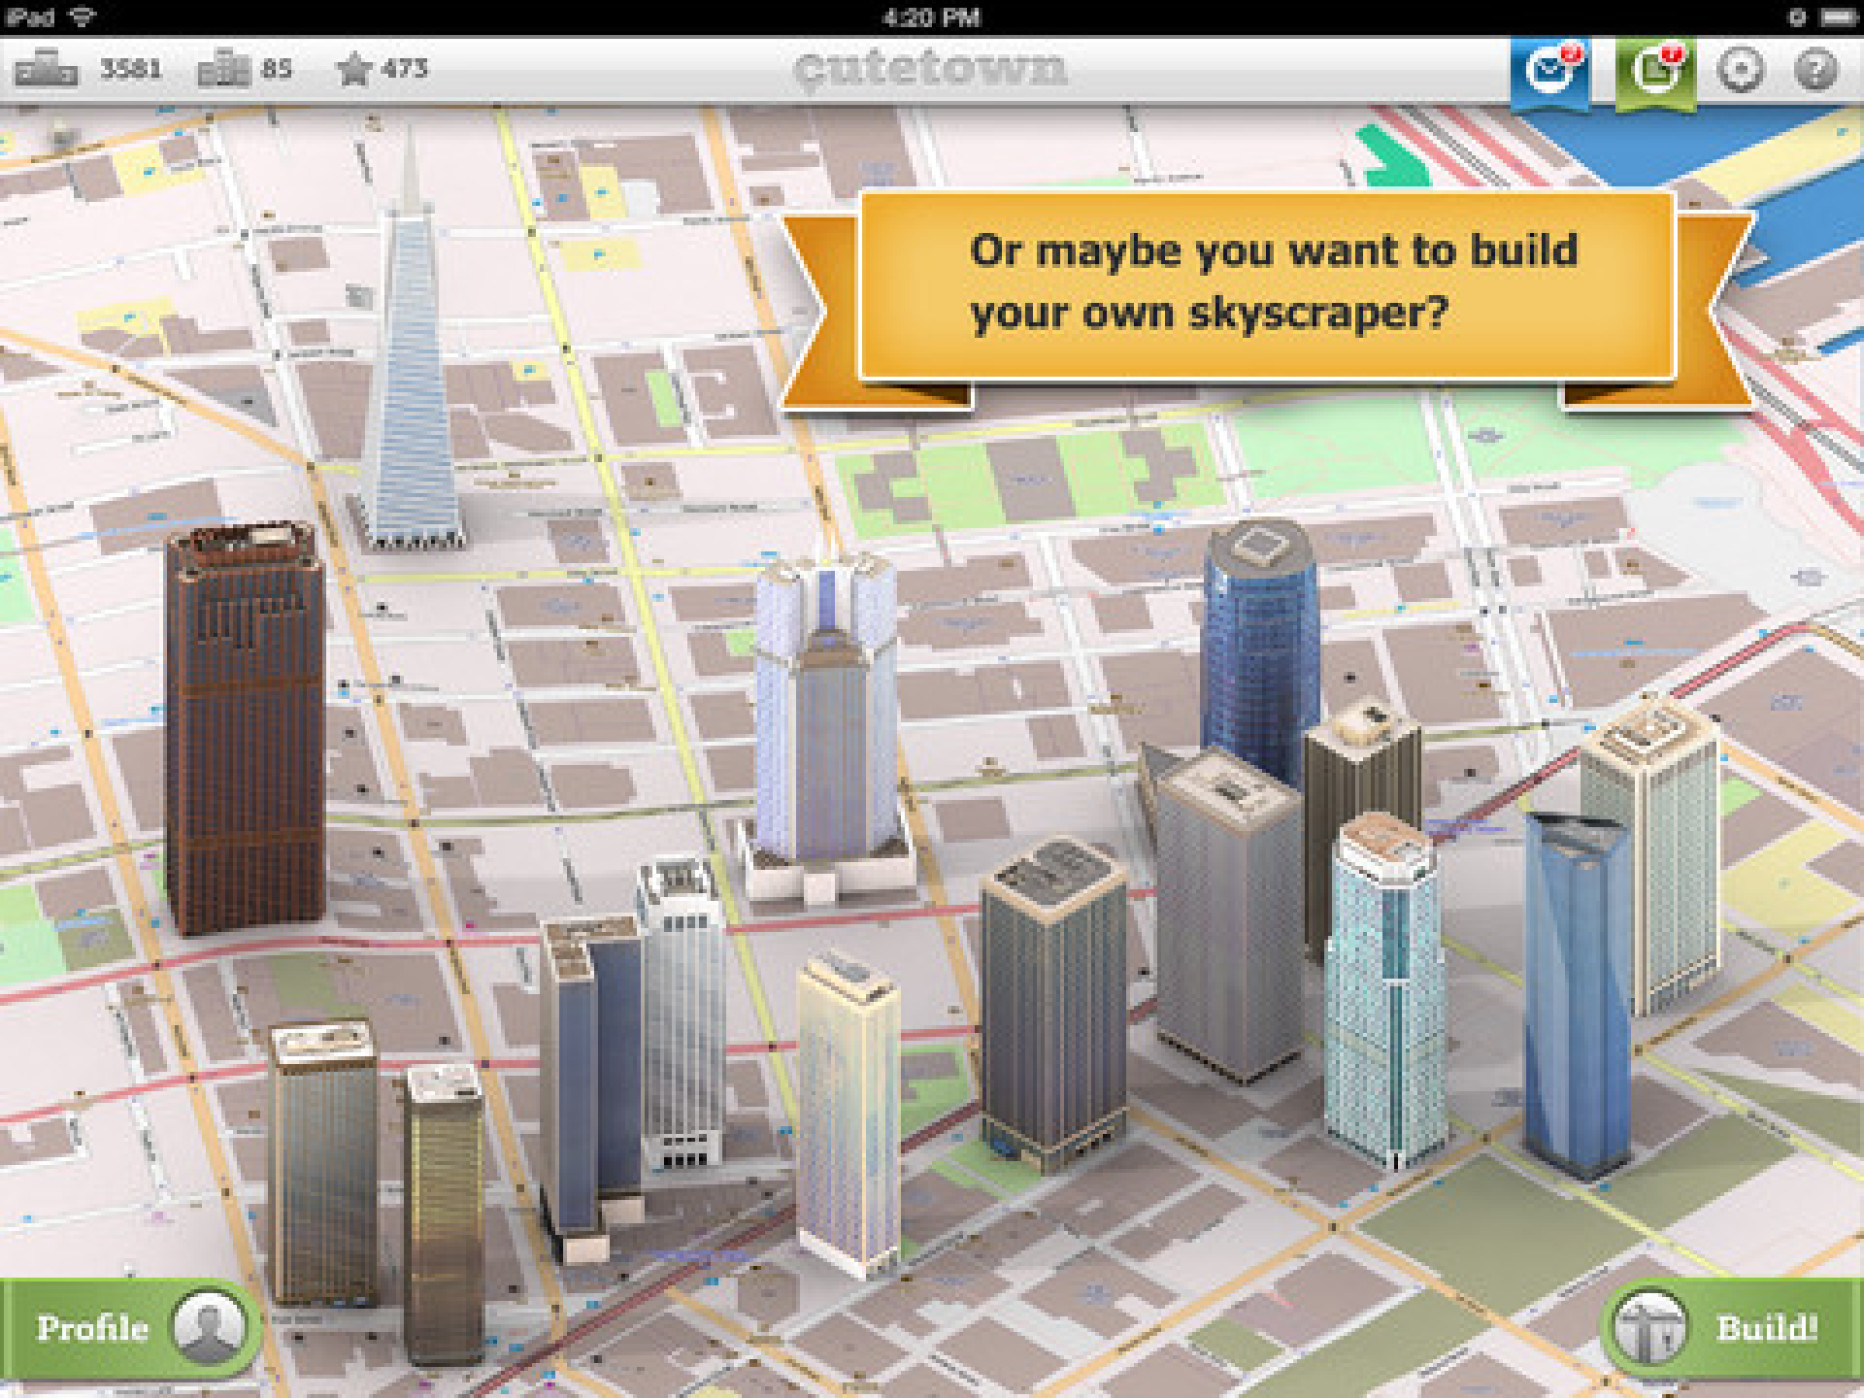 Cutetown San Francisco Takes Map Applications to the Next Level